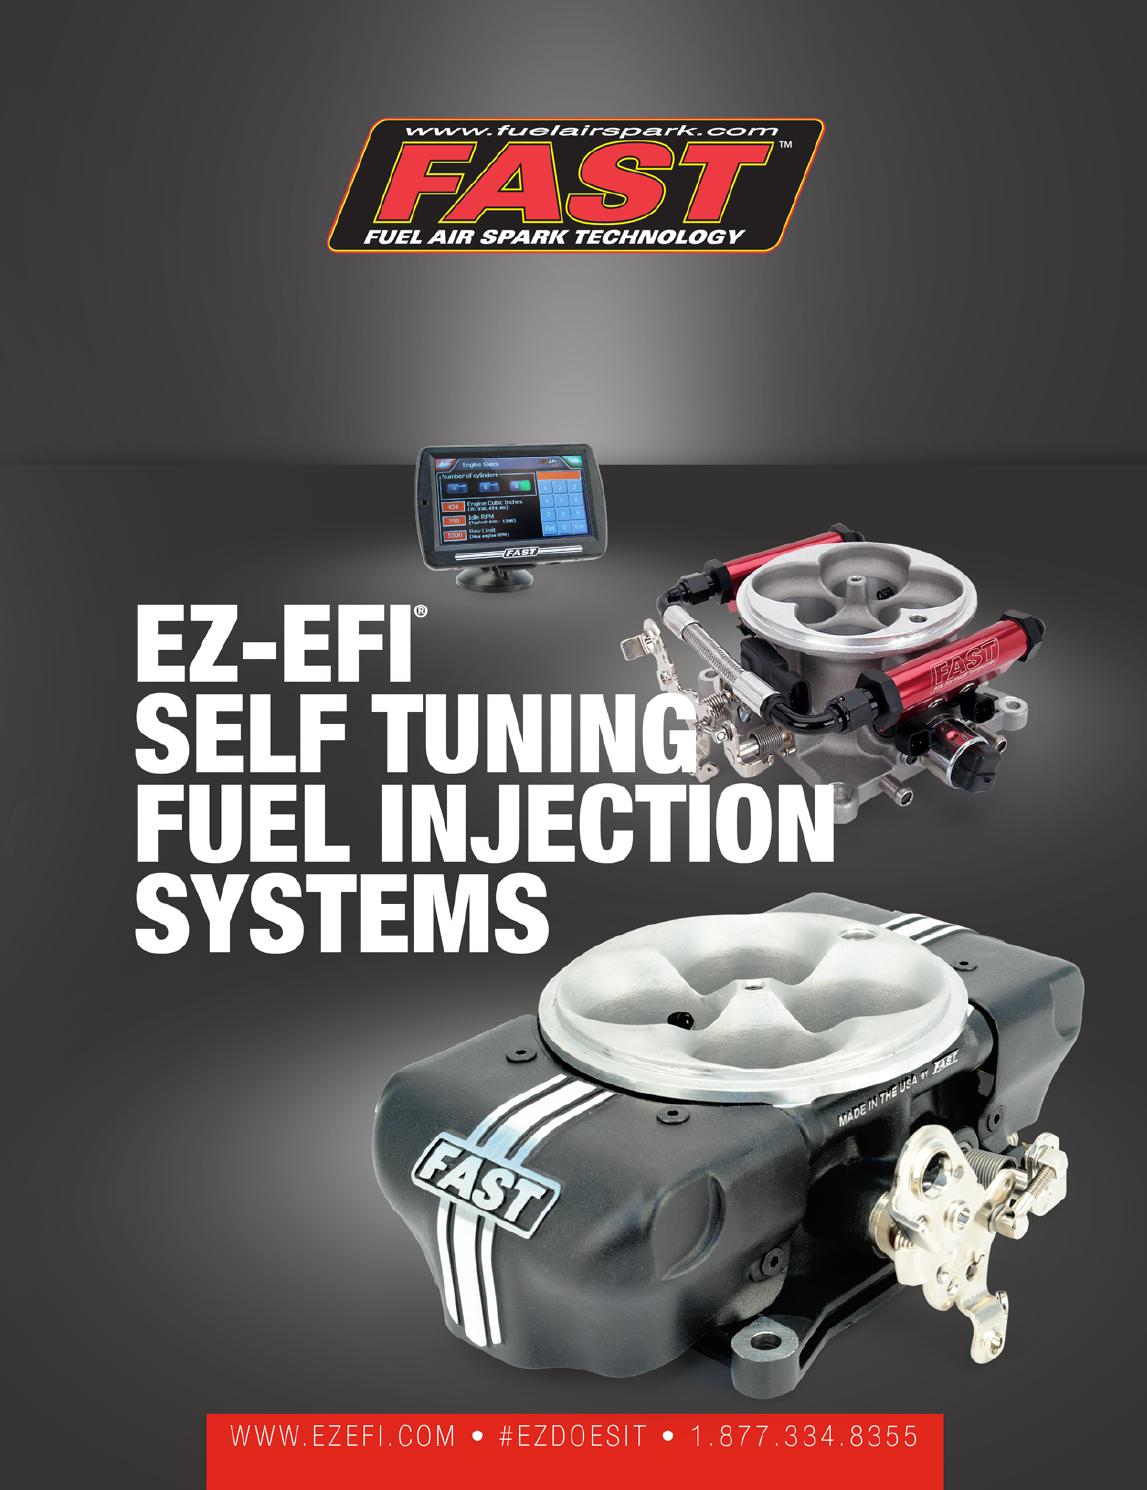 2014 Fast Ez Efi Self Tuning Fuel Injection Systems Brochure By Comp Tcu Controller Wiring Diagram Performance Group Issuu